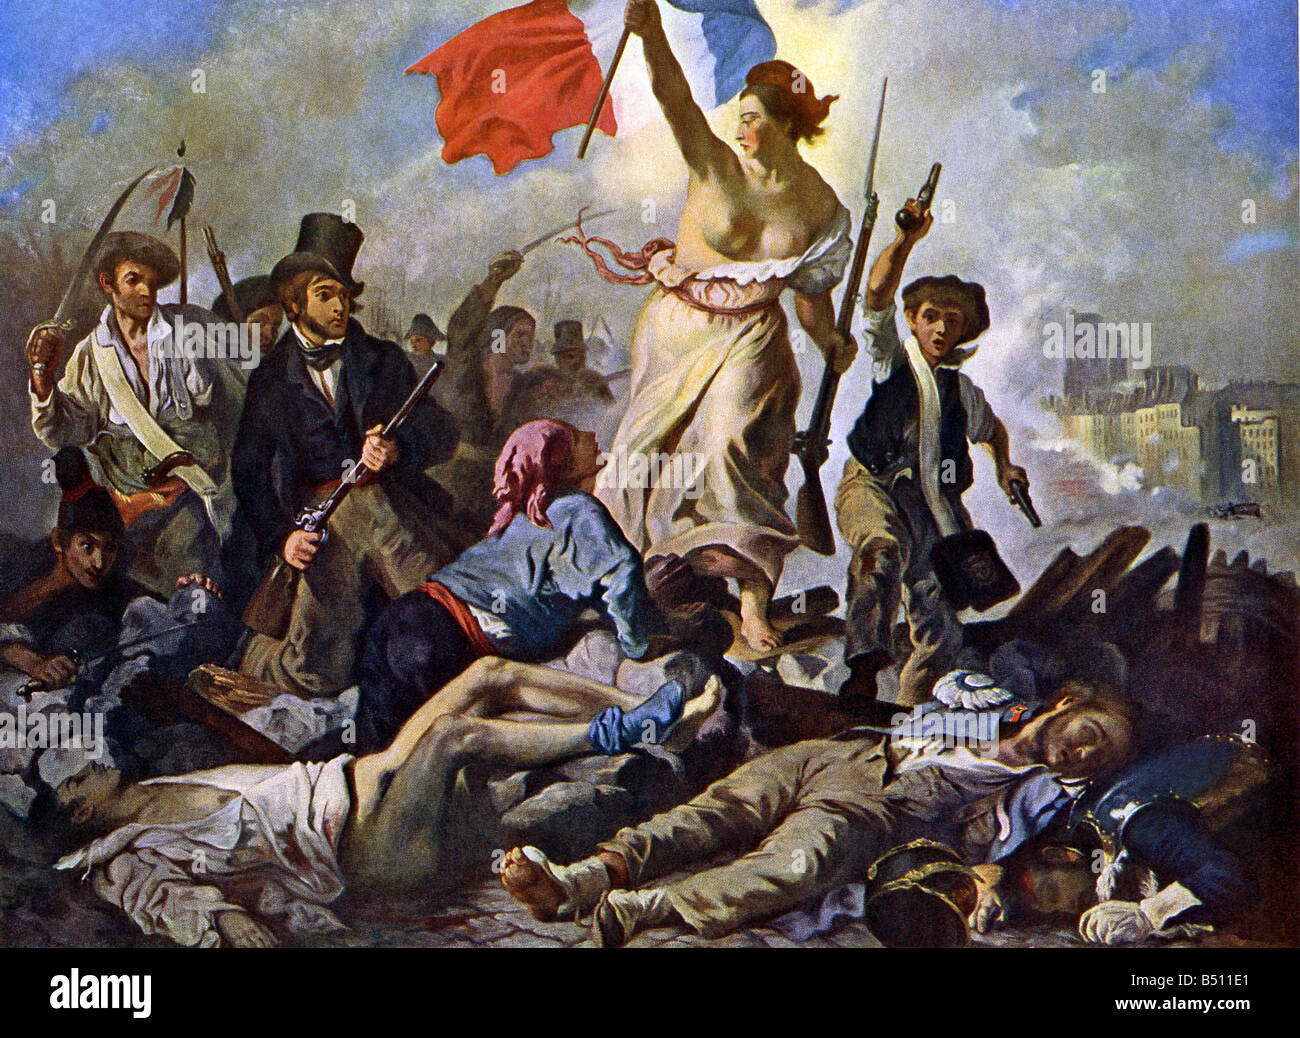 July 1830 French Revolution - Stock Image